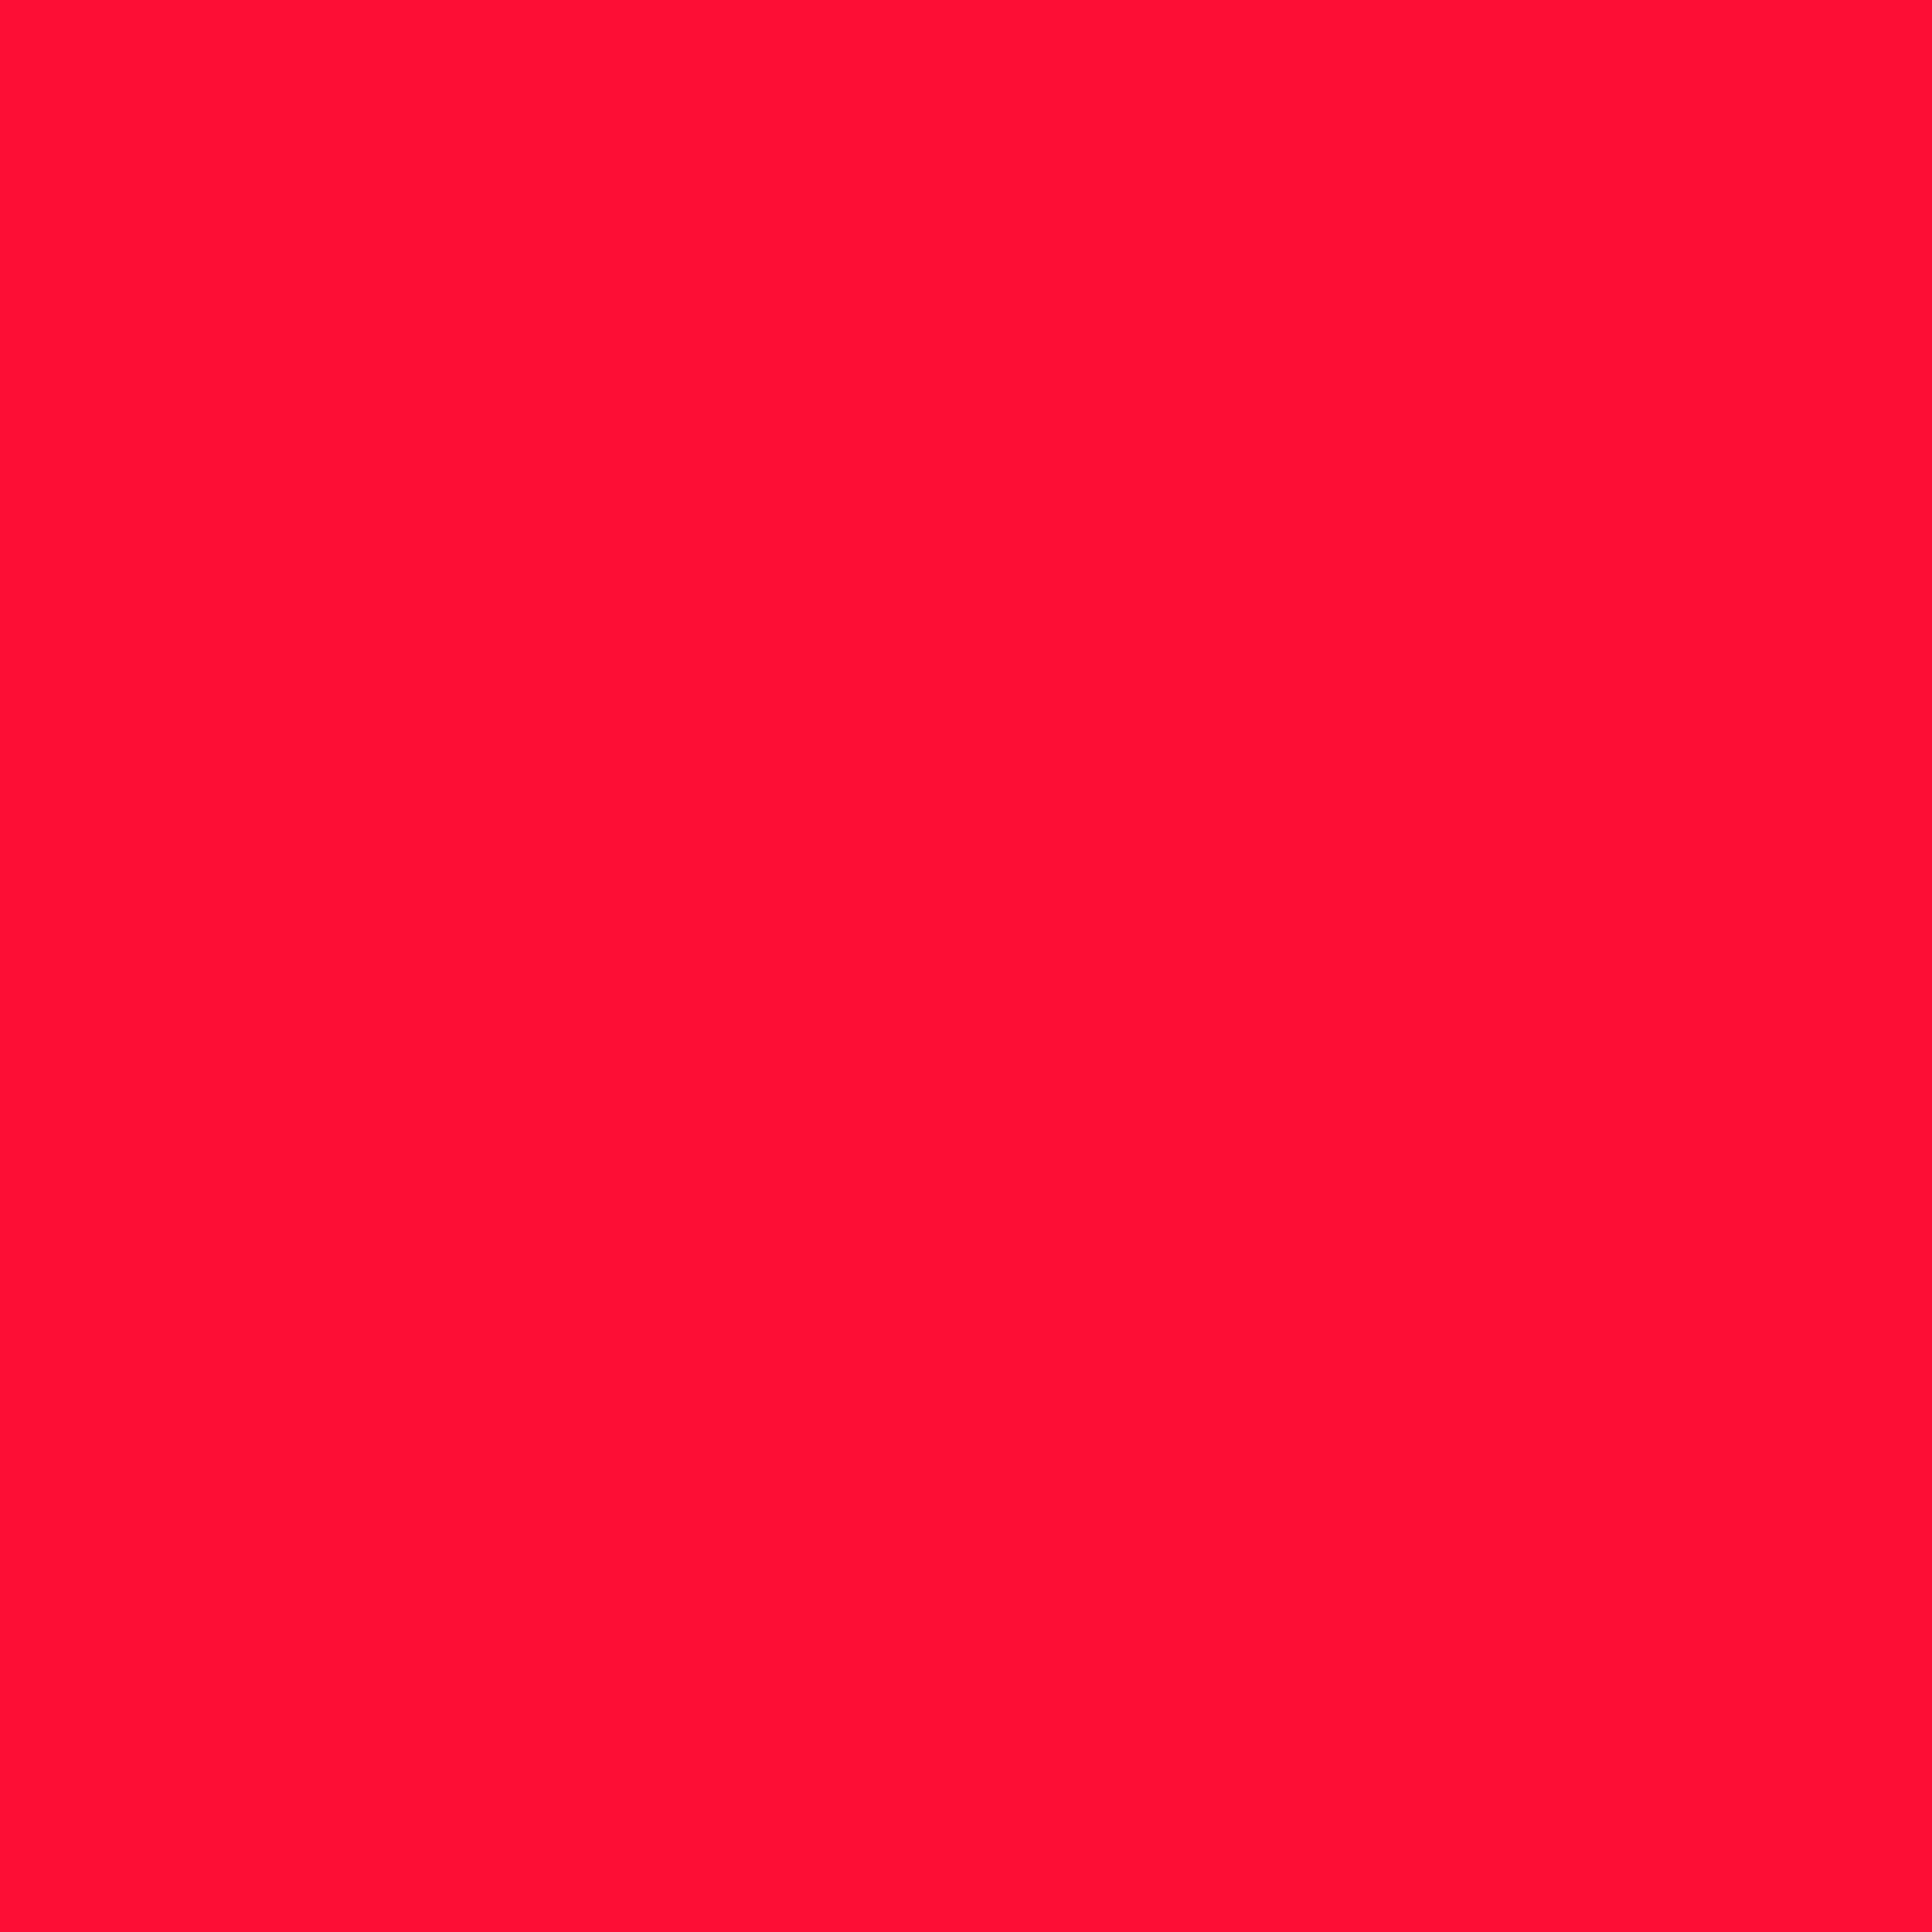 2048x2048 Tractor Red Solid Color Background